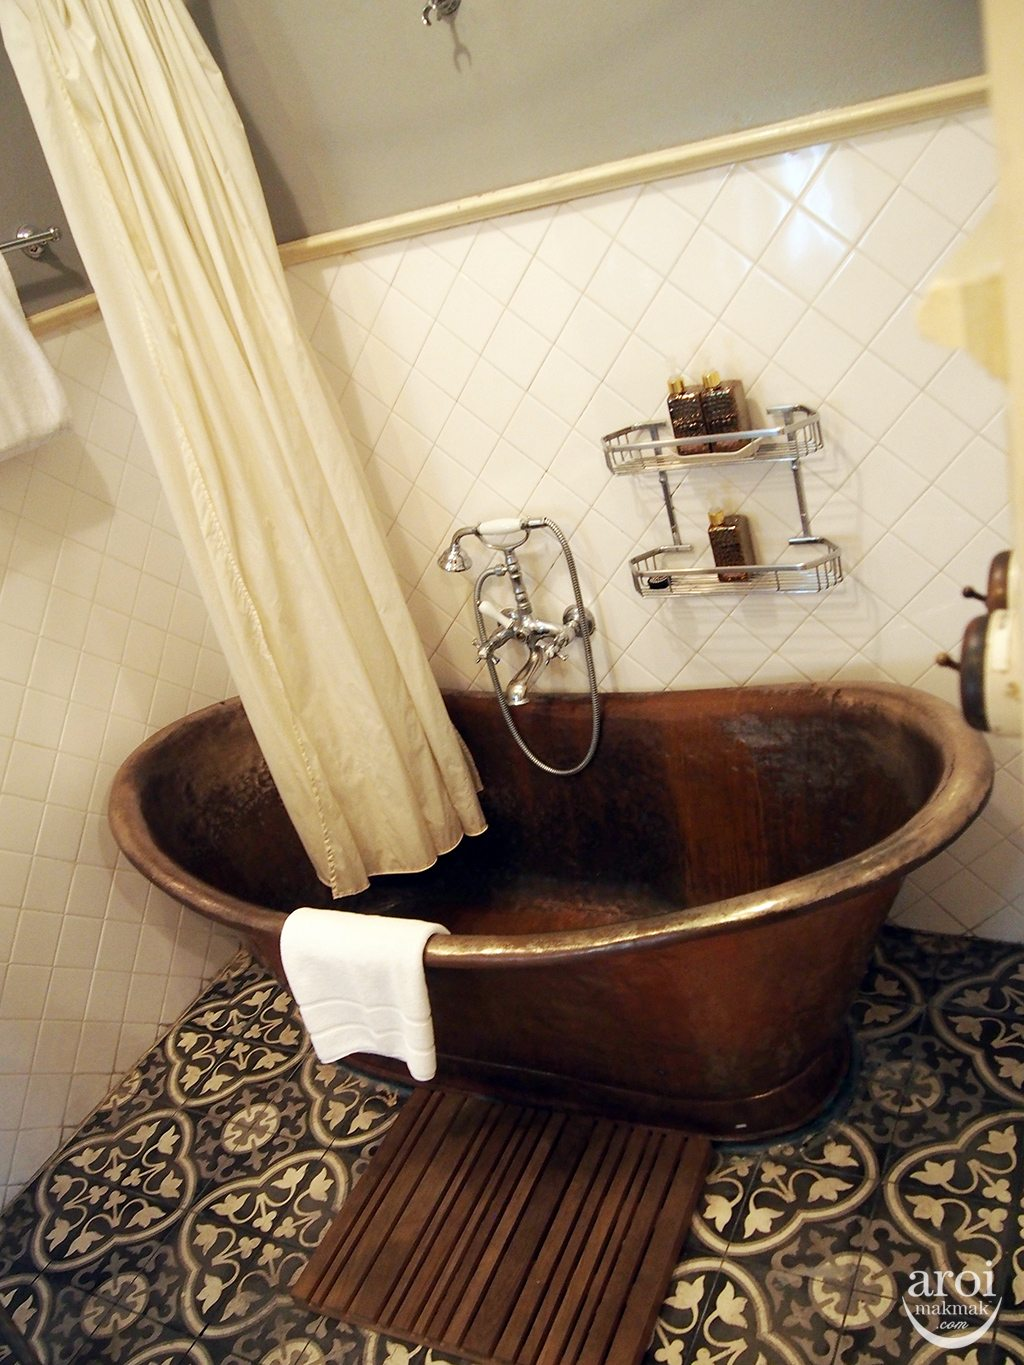 The Eugenia Hotel - Bathtub